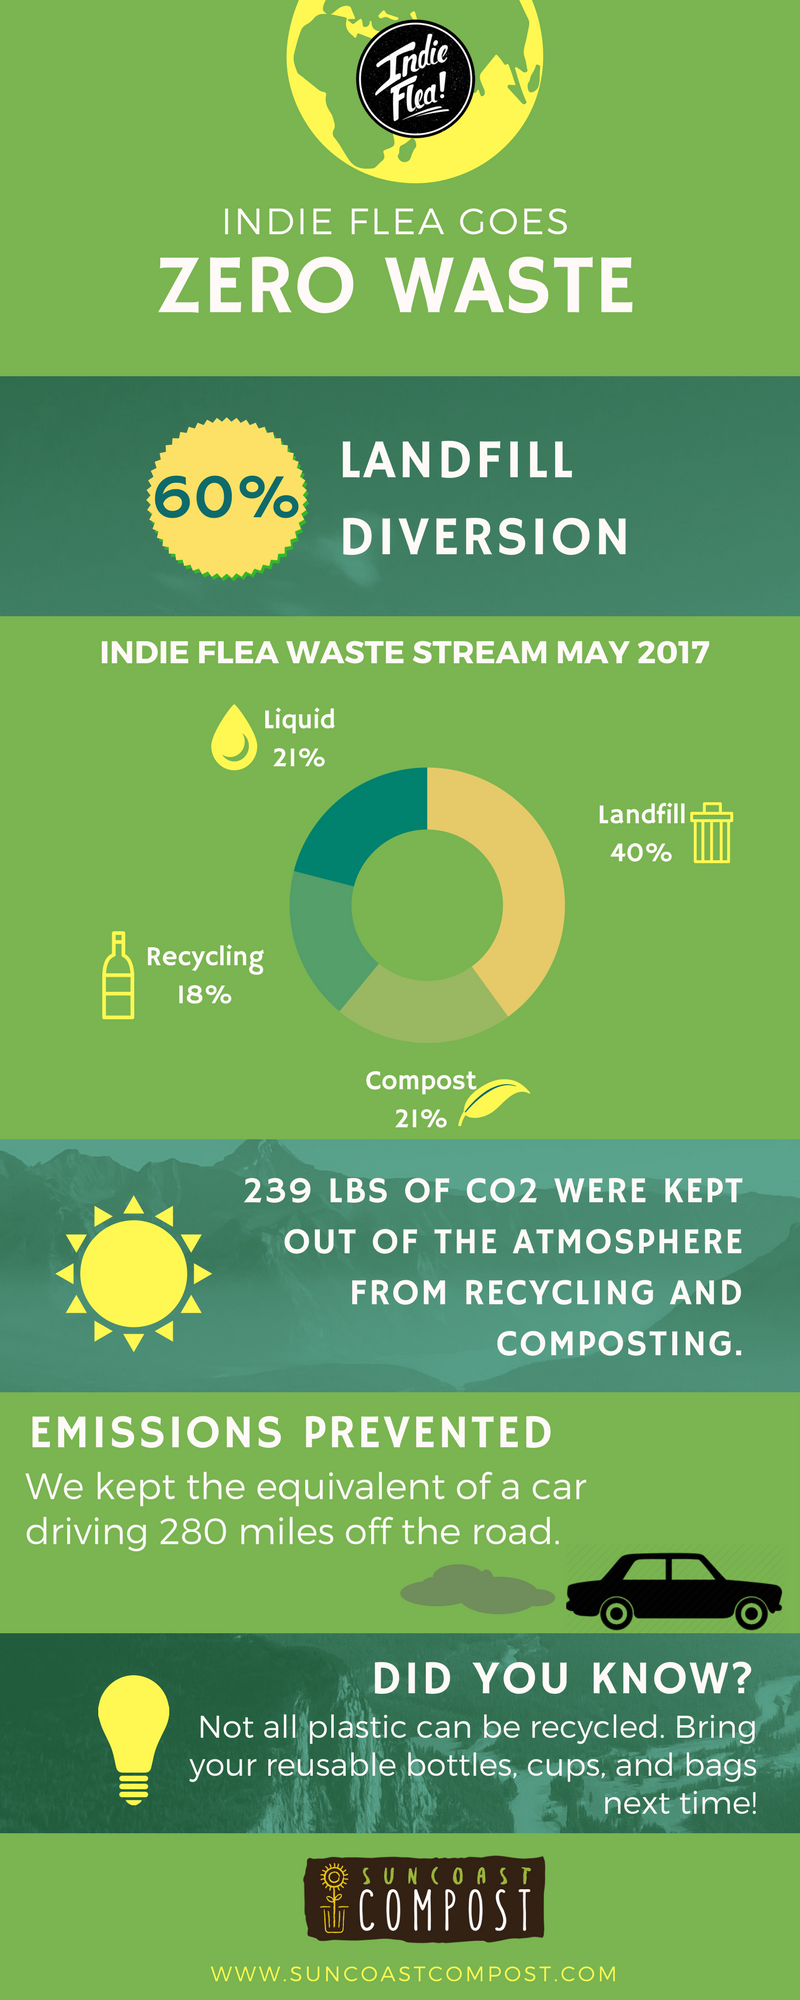 Indie Flea Graphic